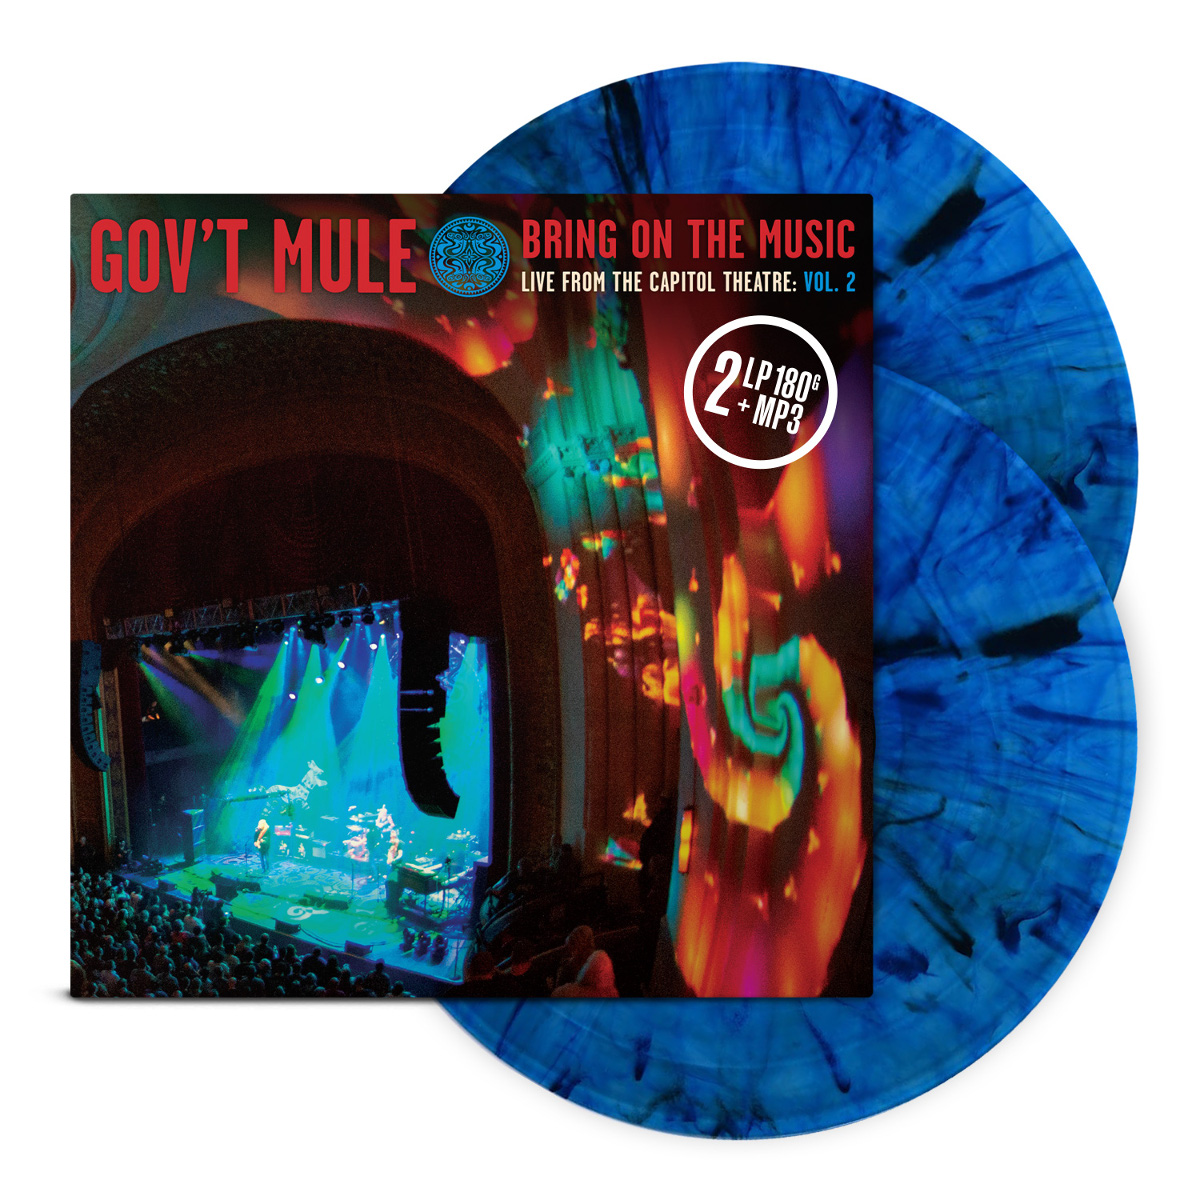 4-LP Red & Blue Splatter Vinyl Bundle: Bring On The Music / Live at The Capitol Theatre